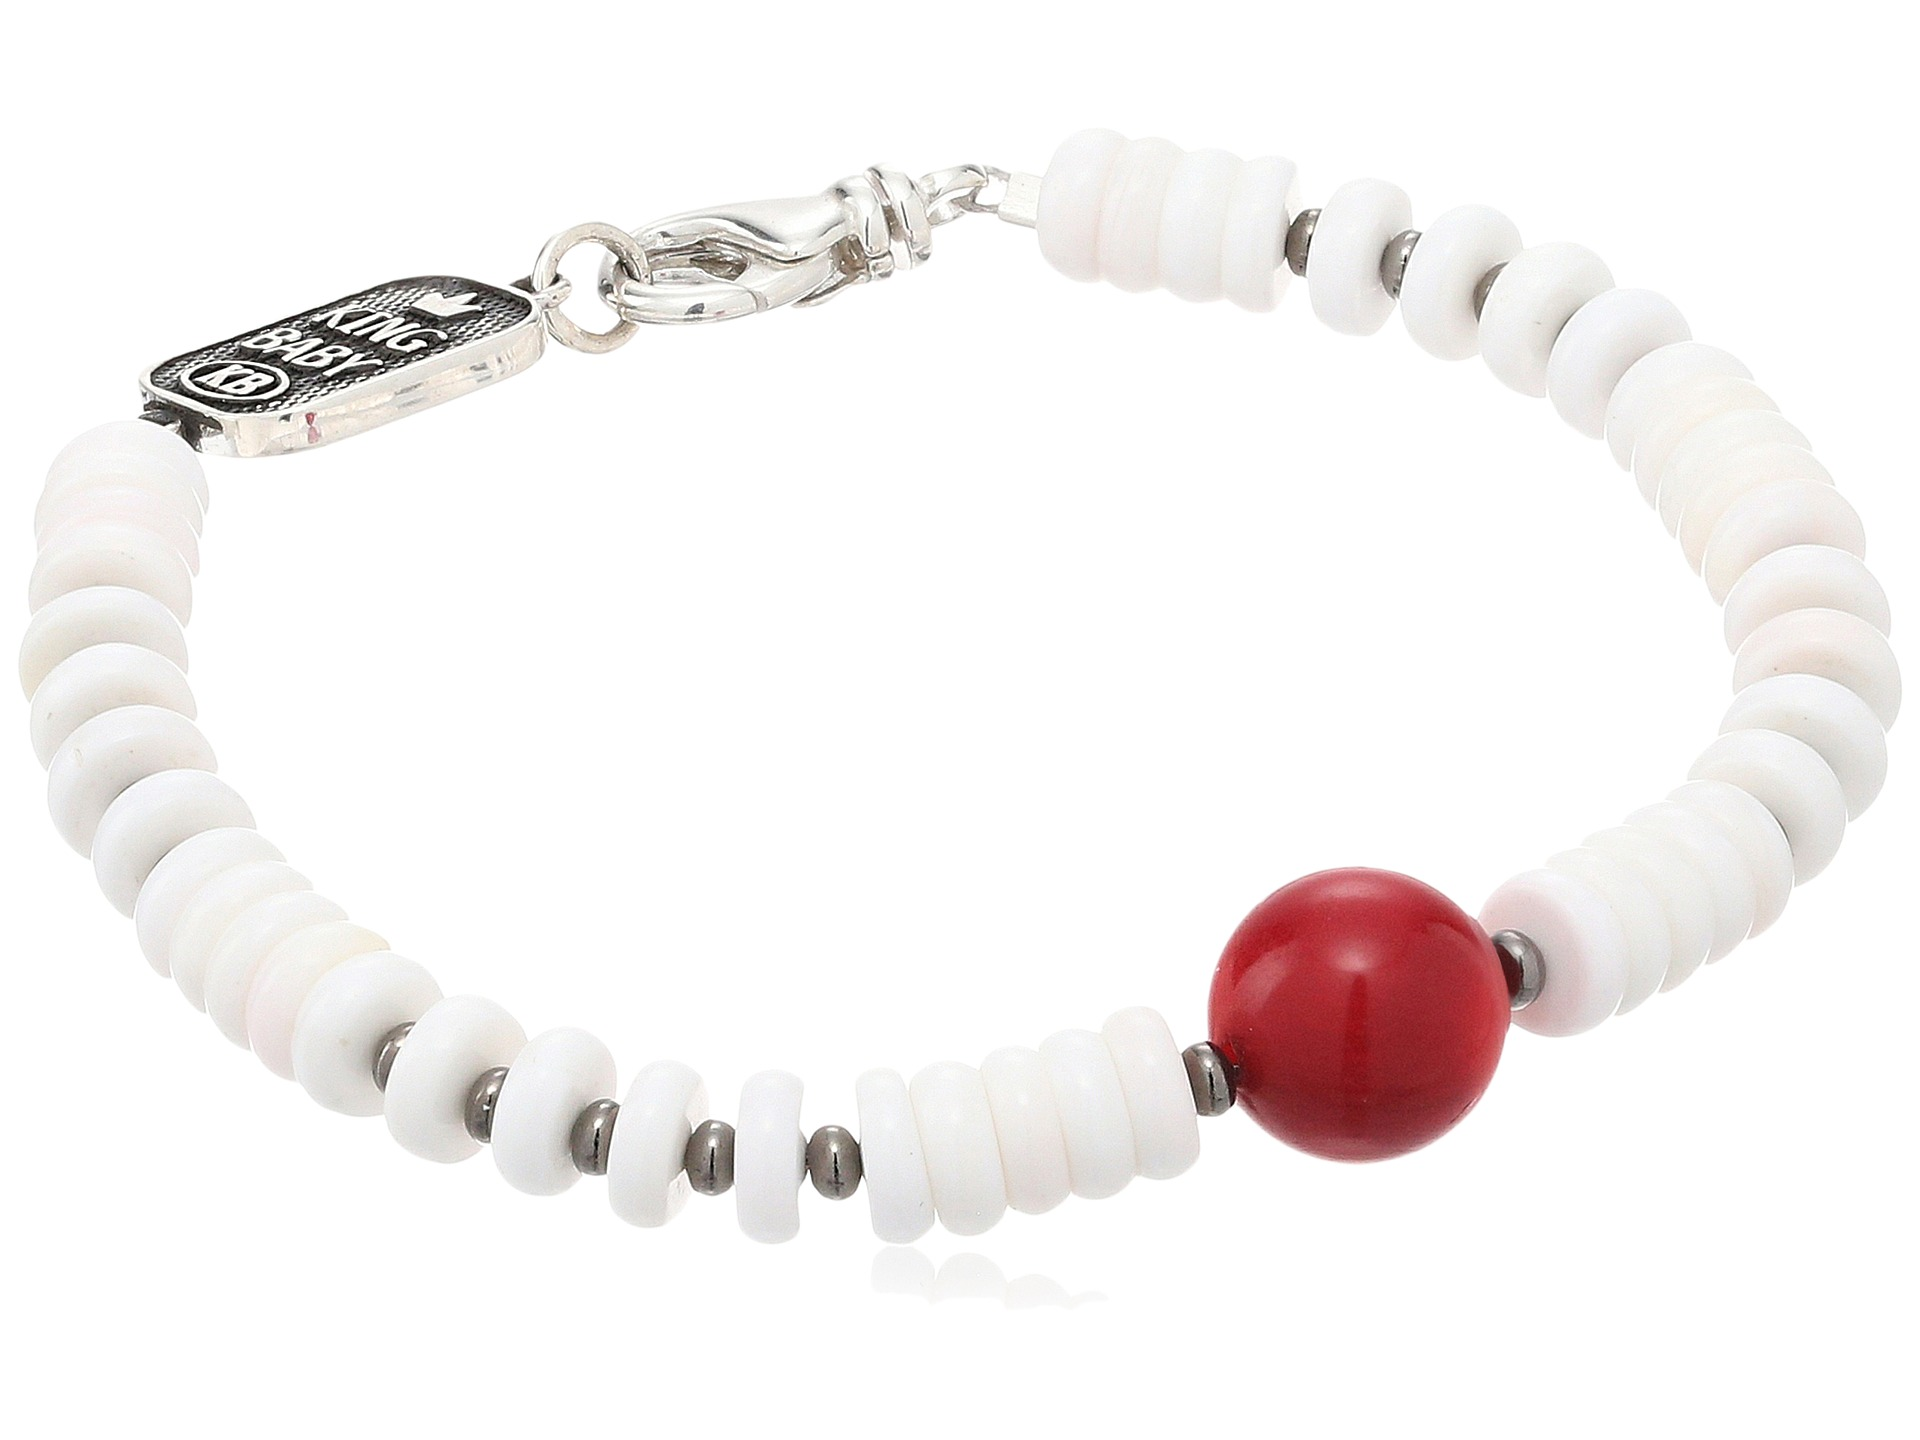 King baby studio white shell bead bracelet with a round for King baby jewelry sale